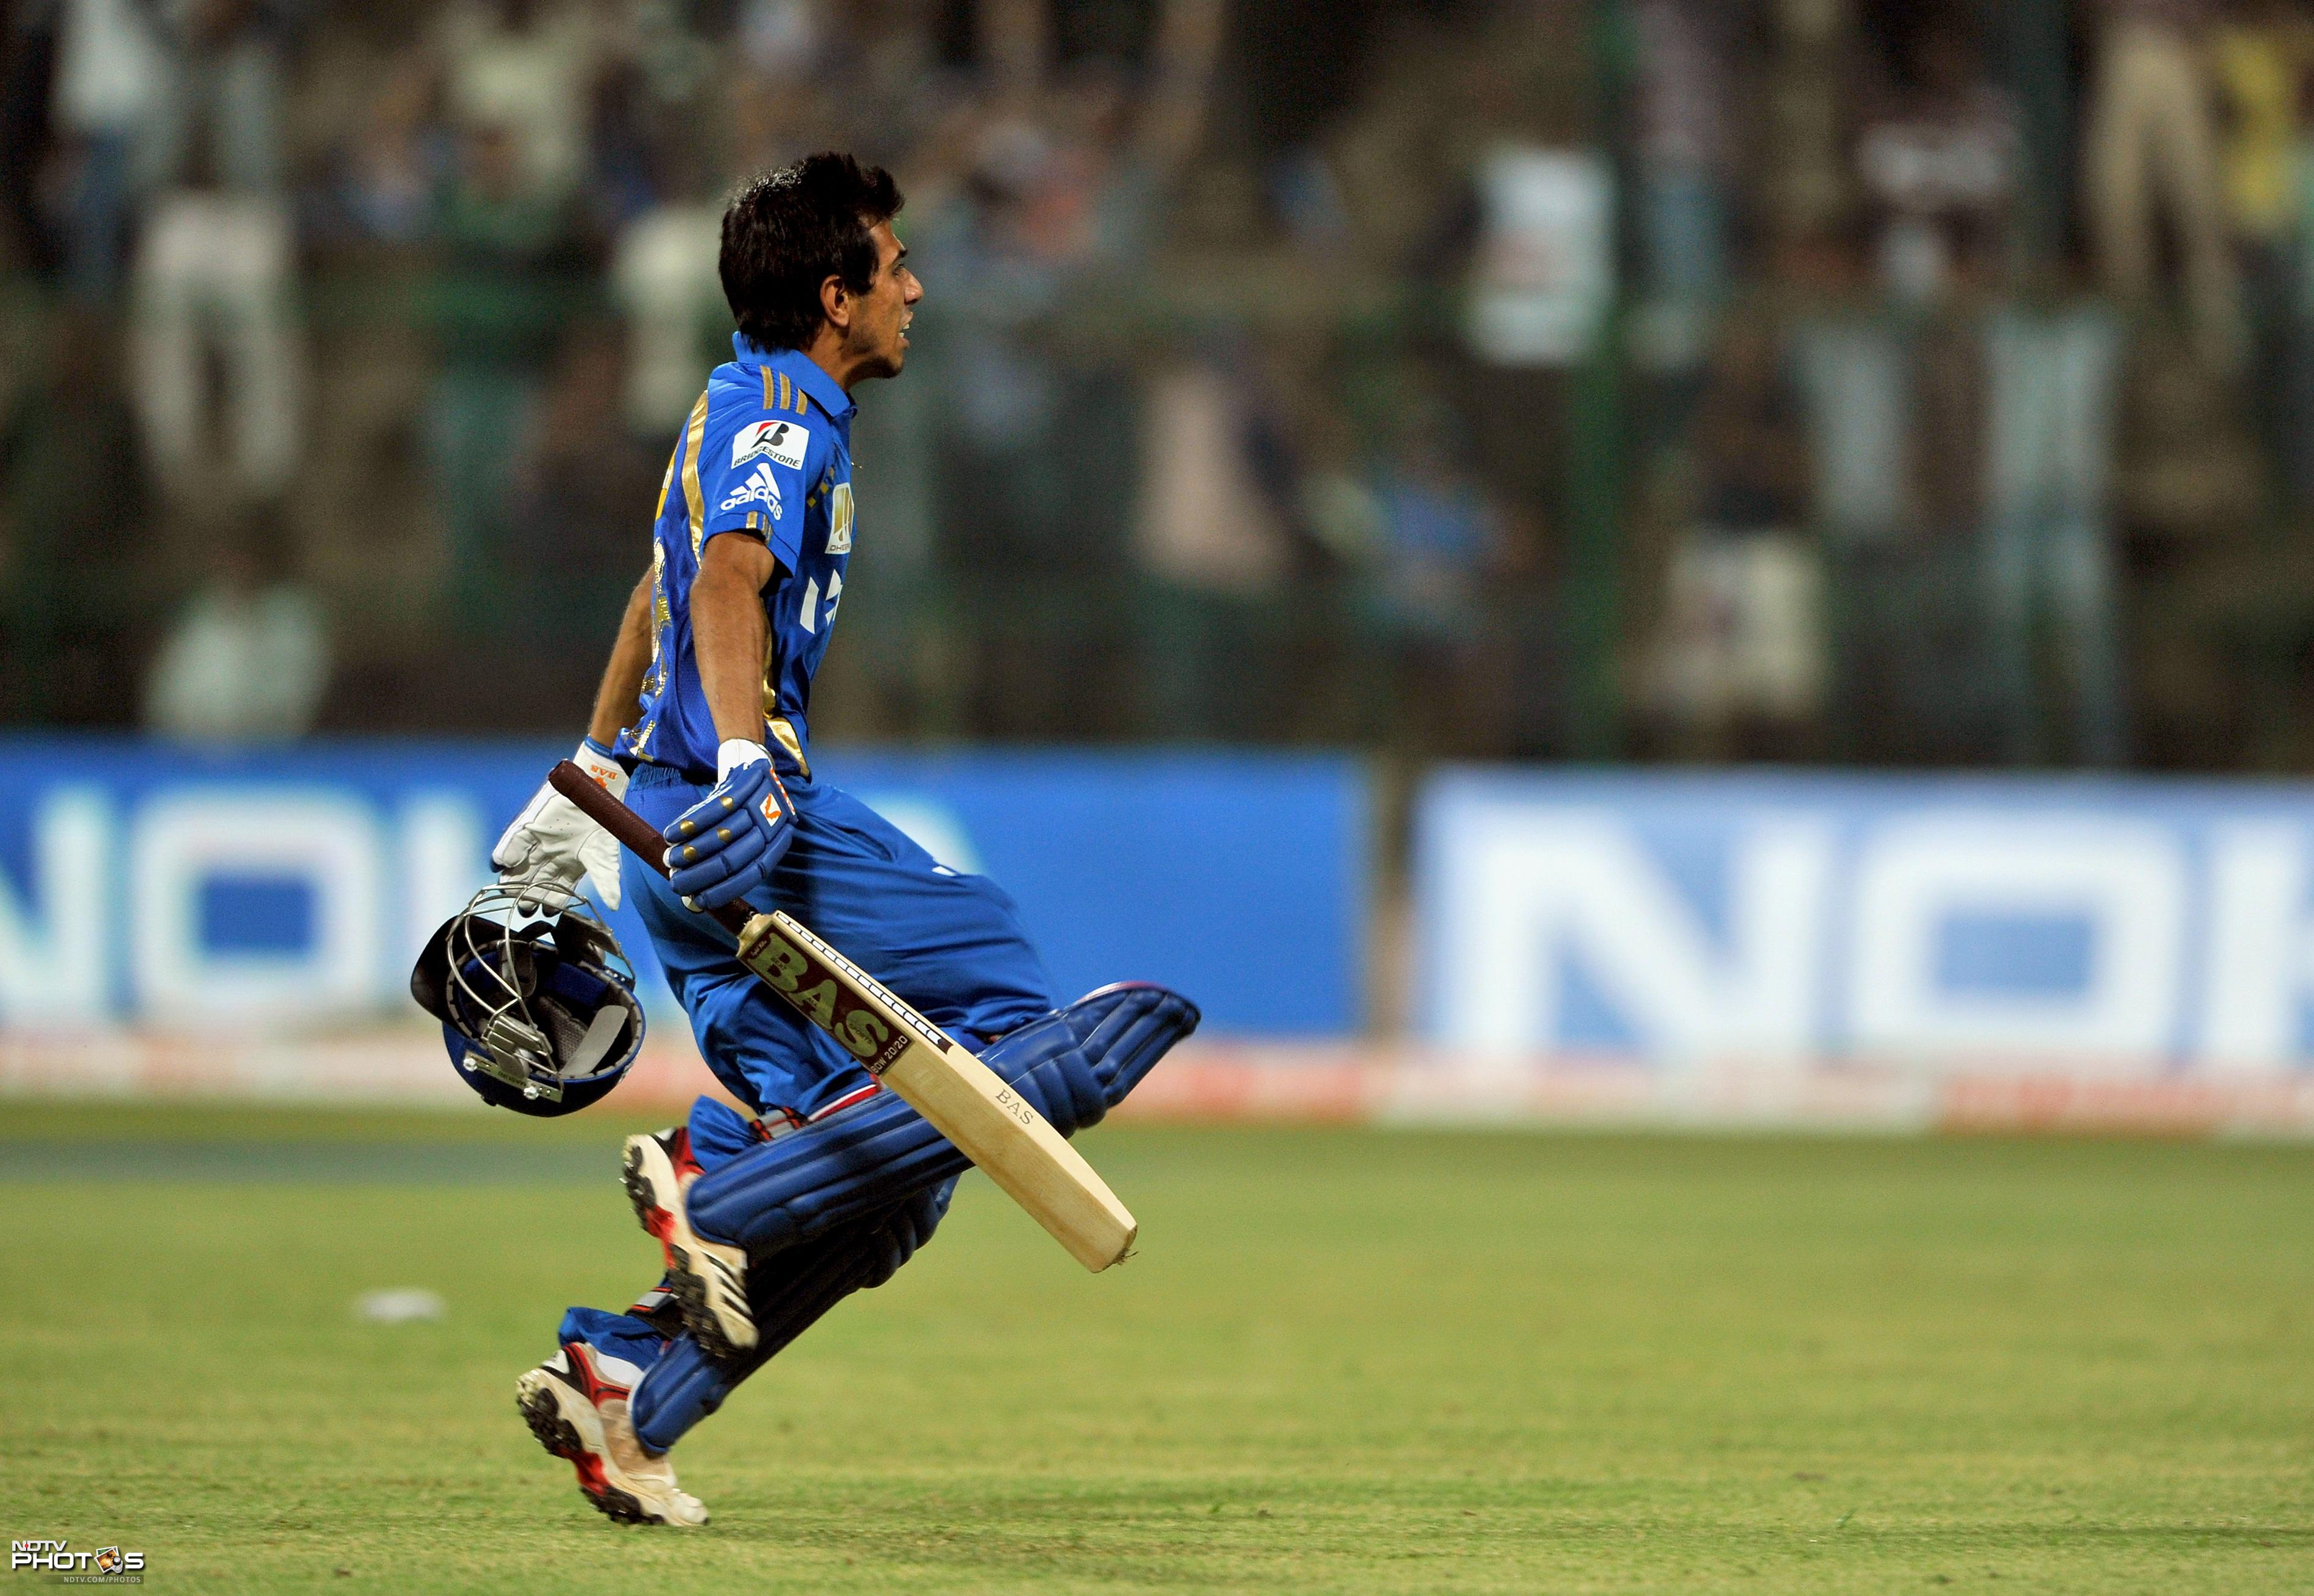 Yuzvendra Chahal runs towards his teammates after scoring winning runs off the last ball during the Champions League Twenty20 League Group A match between Mumbai Indians and Trinidad and Tobago at the M. Chinnaswamy Stadium in Bangalore. (AFP Photo)